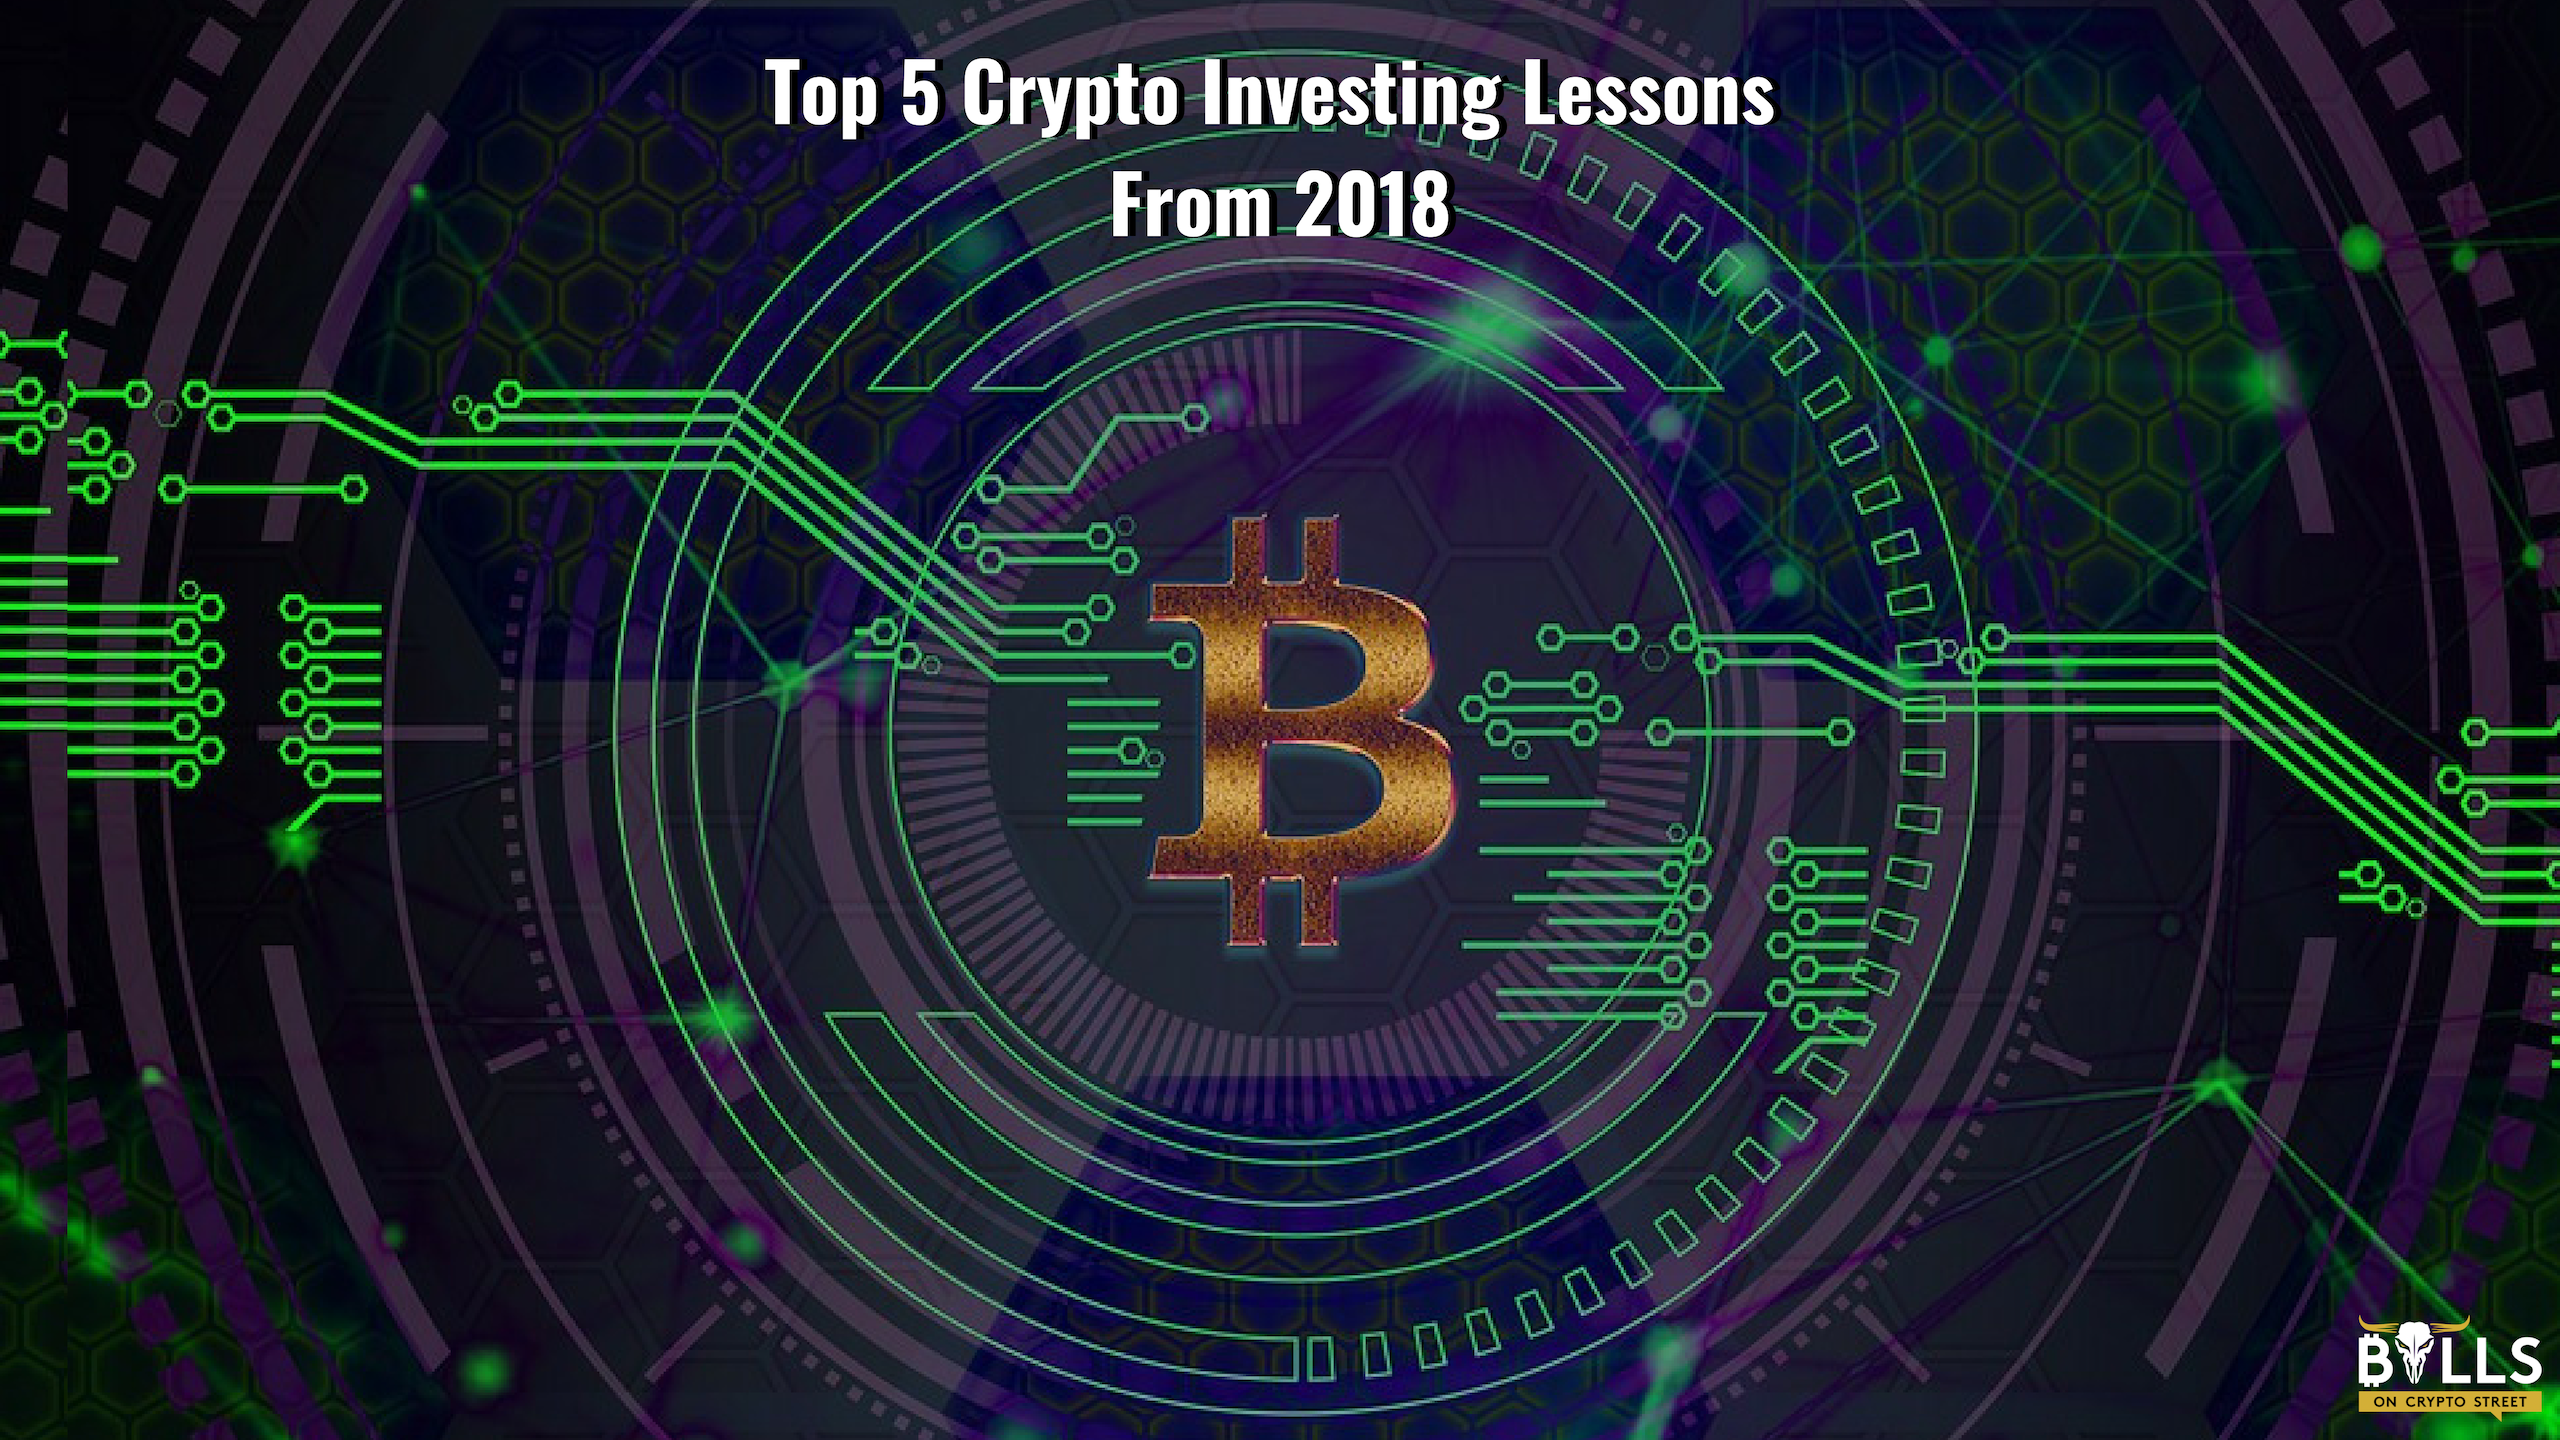 Top 5 Crypto Investing Lessons From 2018